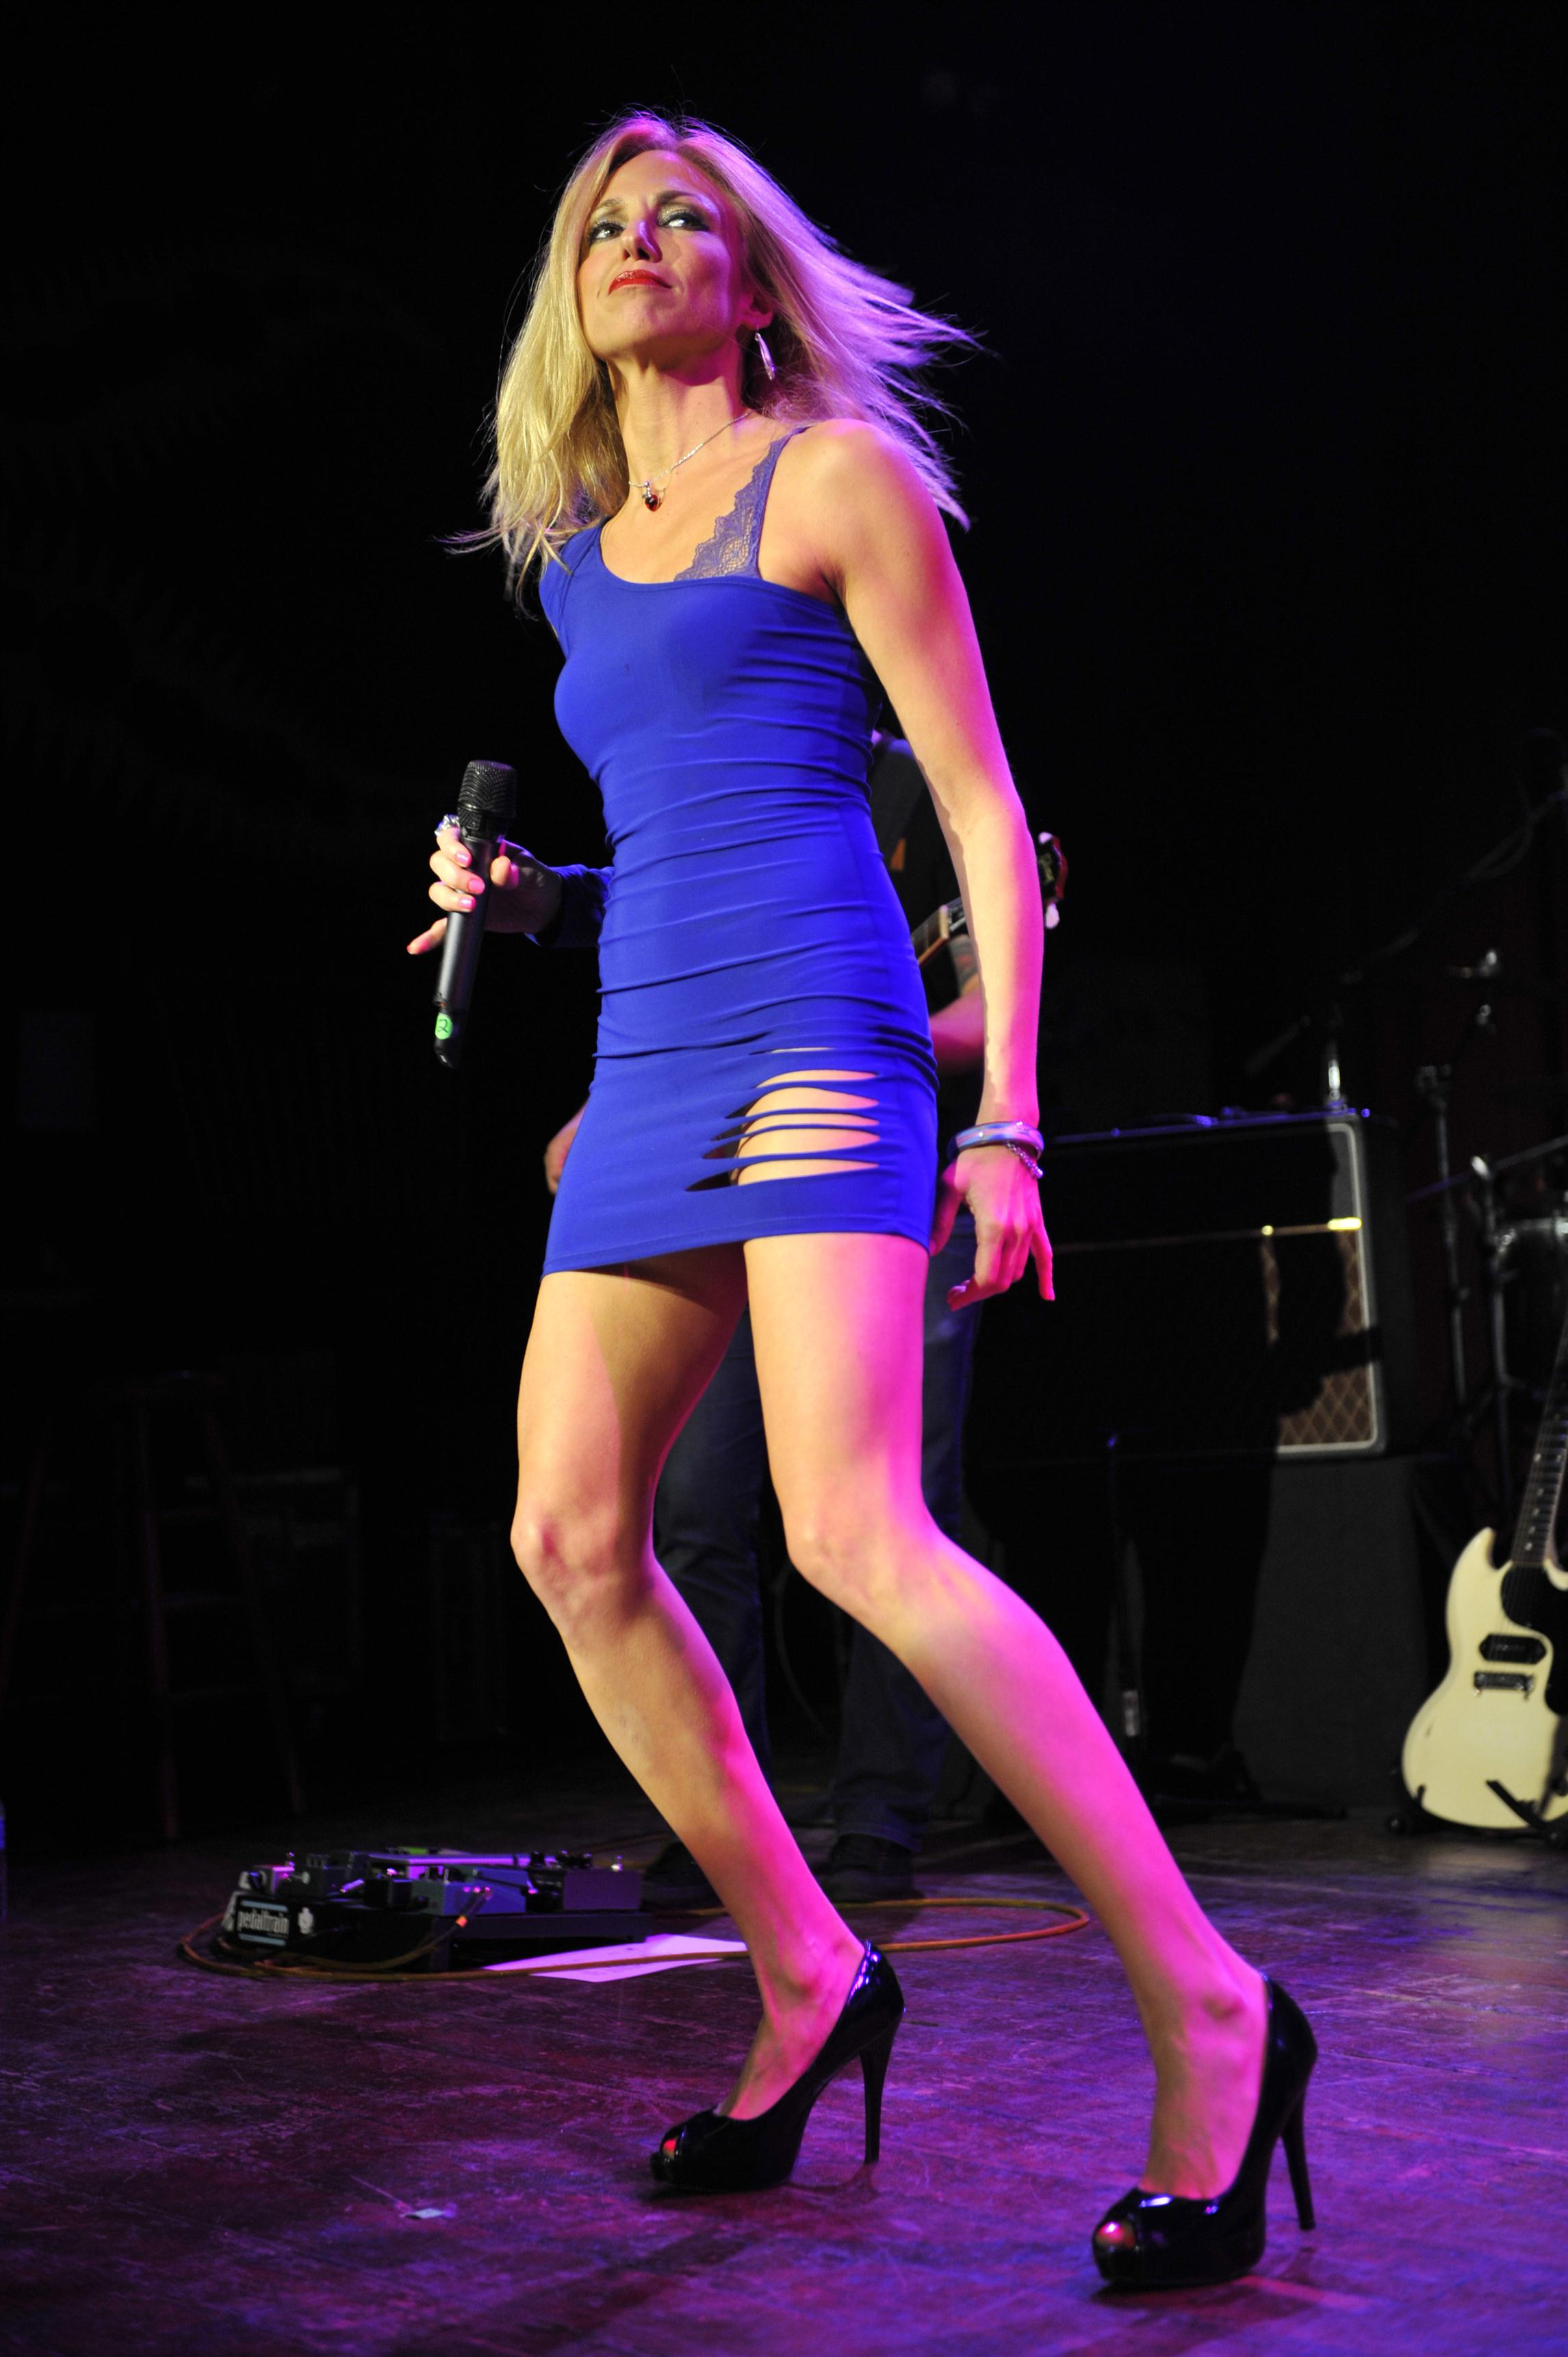 Debbie Gibson  House of Blues performance in Blue Tight